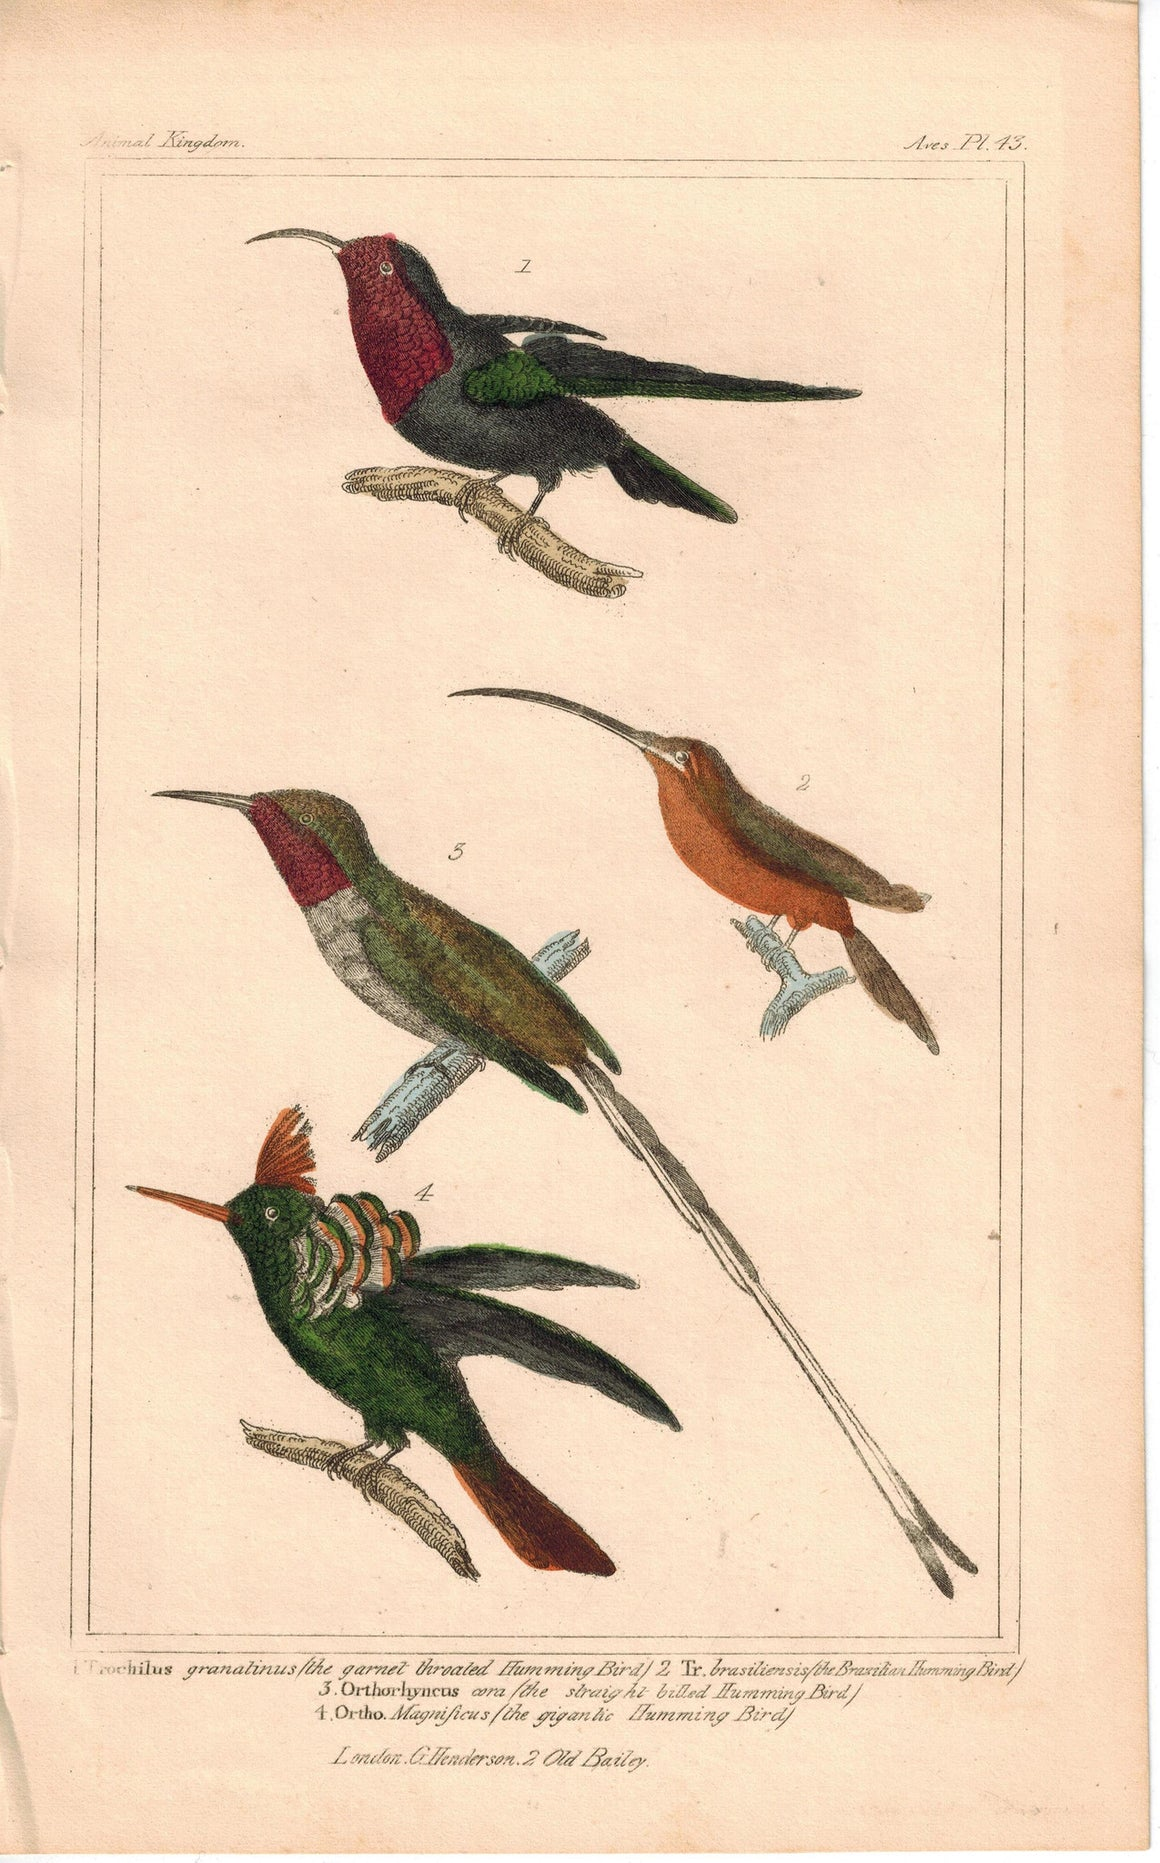 Birds Hummingbird Family 1837 Antique Engraved Cuvier Print